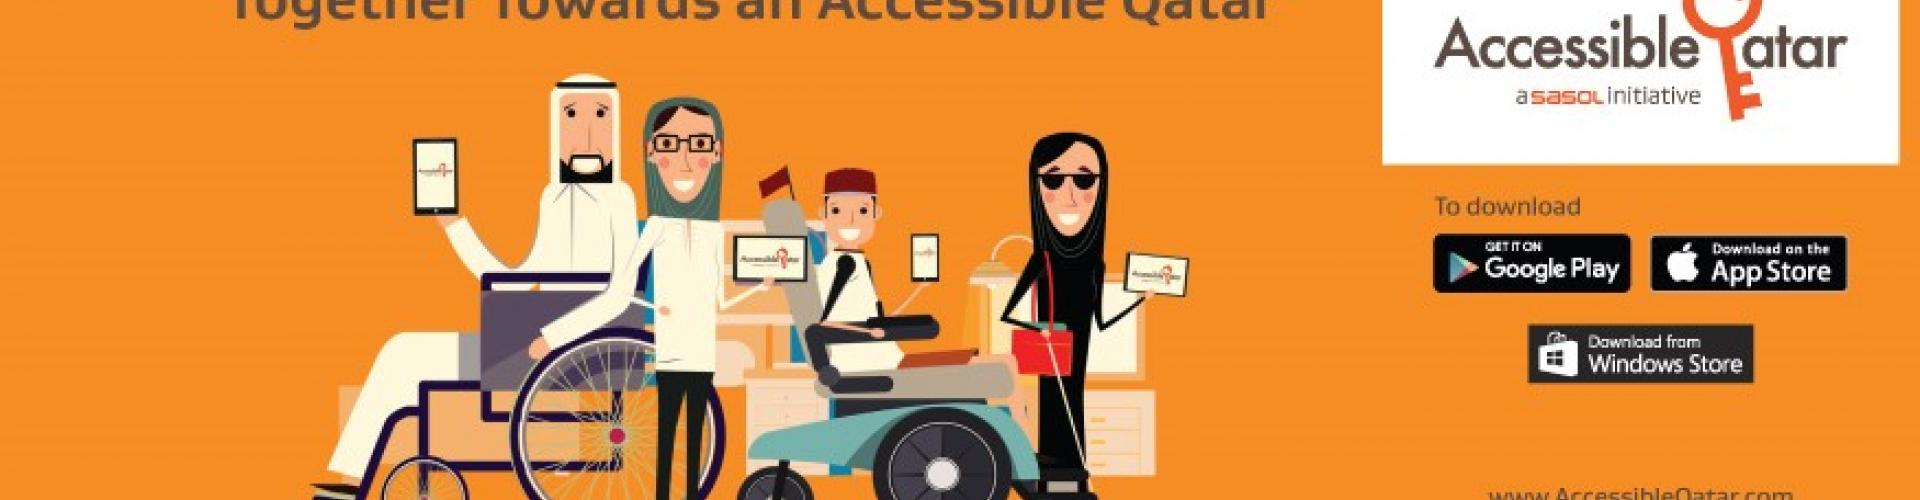 Accessible Qatar mobile app and website, provide you with the accessibility information of public venues in Qatar depending on your disability